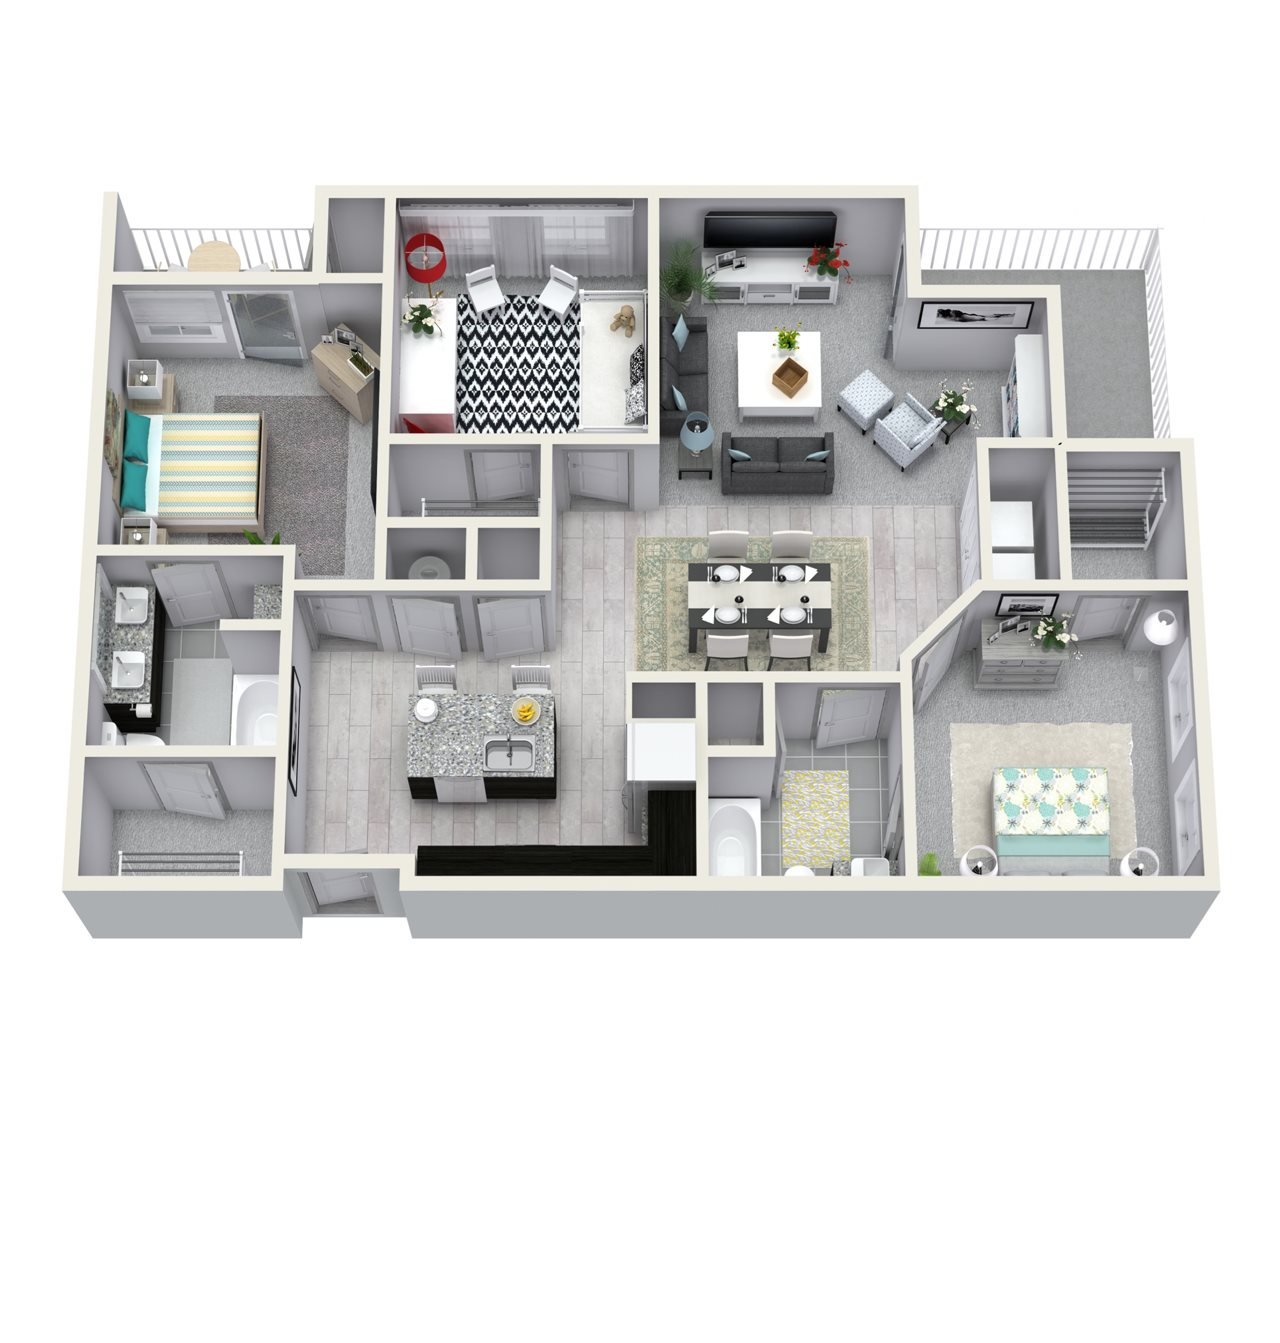 3 Bedroom 2 Bath 1370 sqft C1 Floor Plan 13